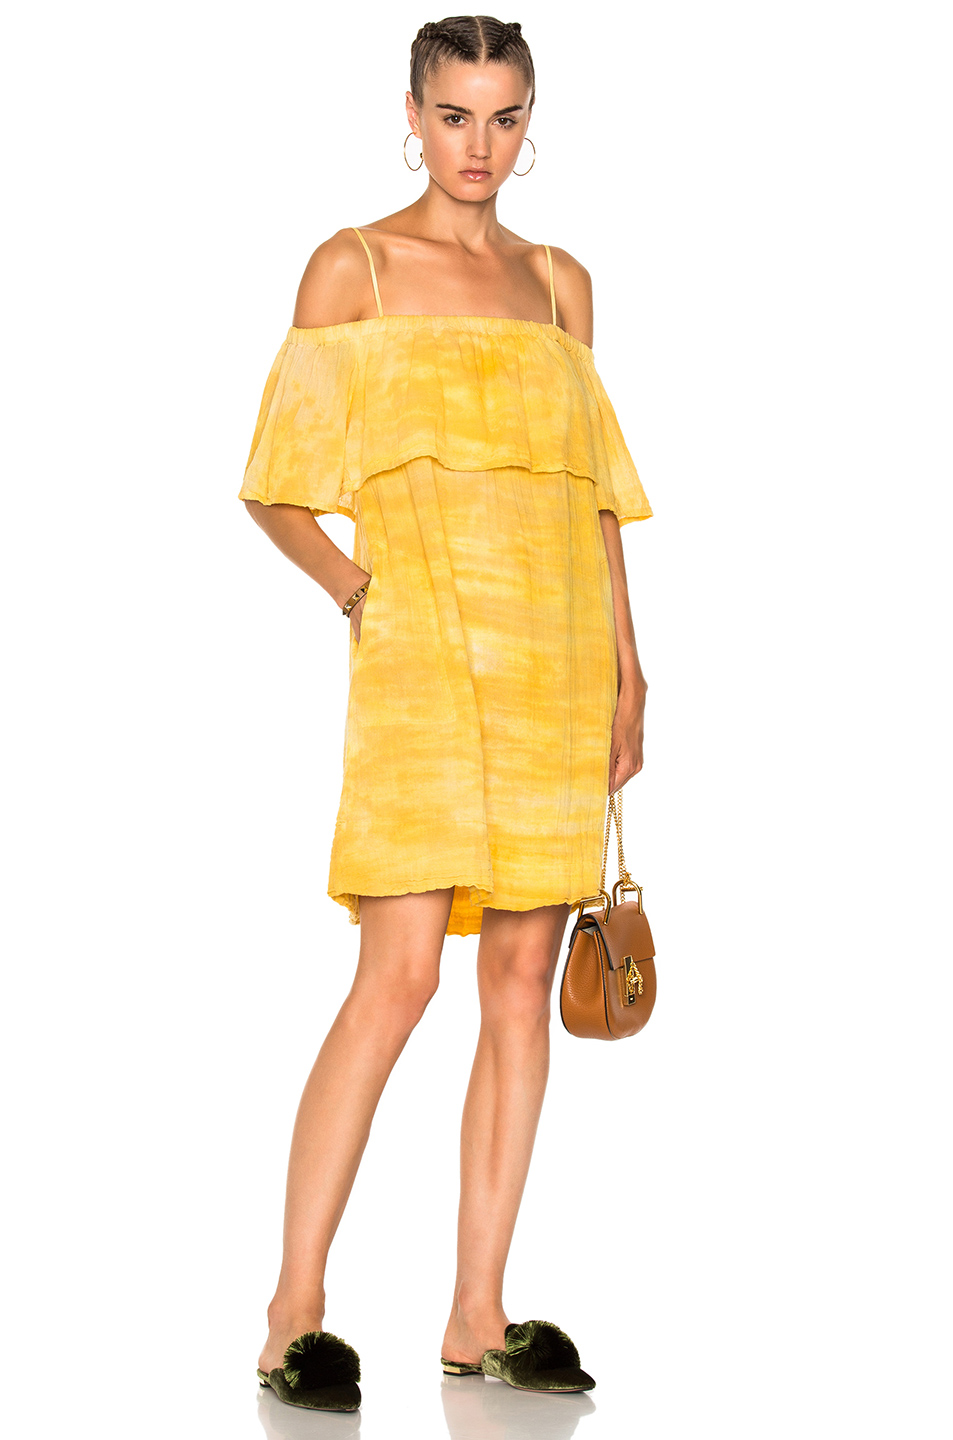 Raquel Allegra for FWRD Cotton Gauze Mini Dress in Yellow,Ombre & Tie Dye